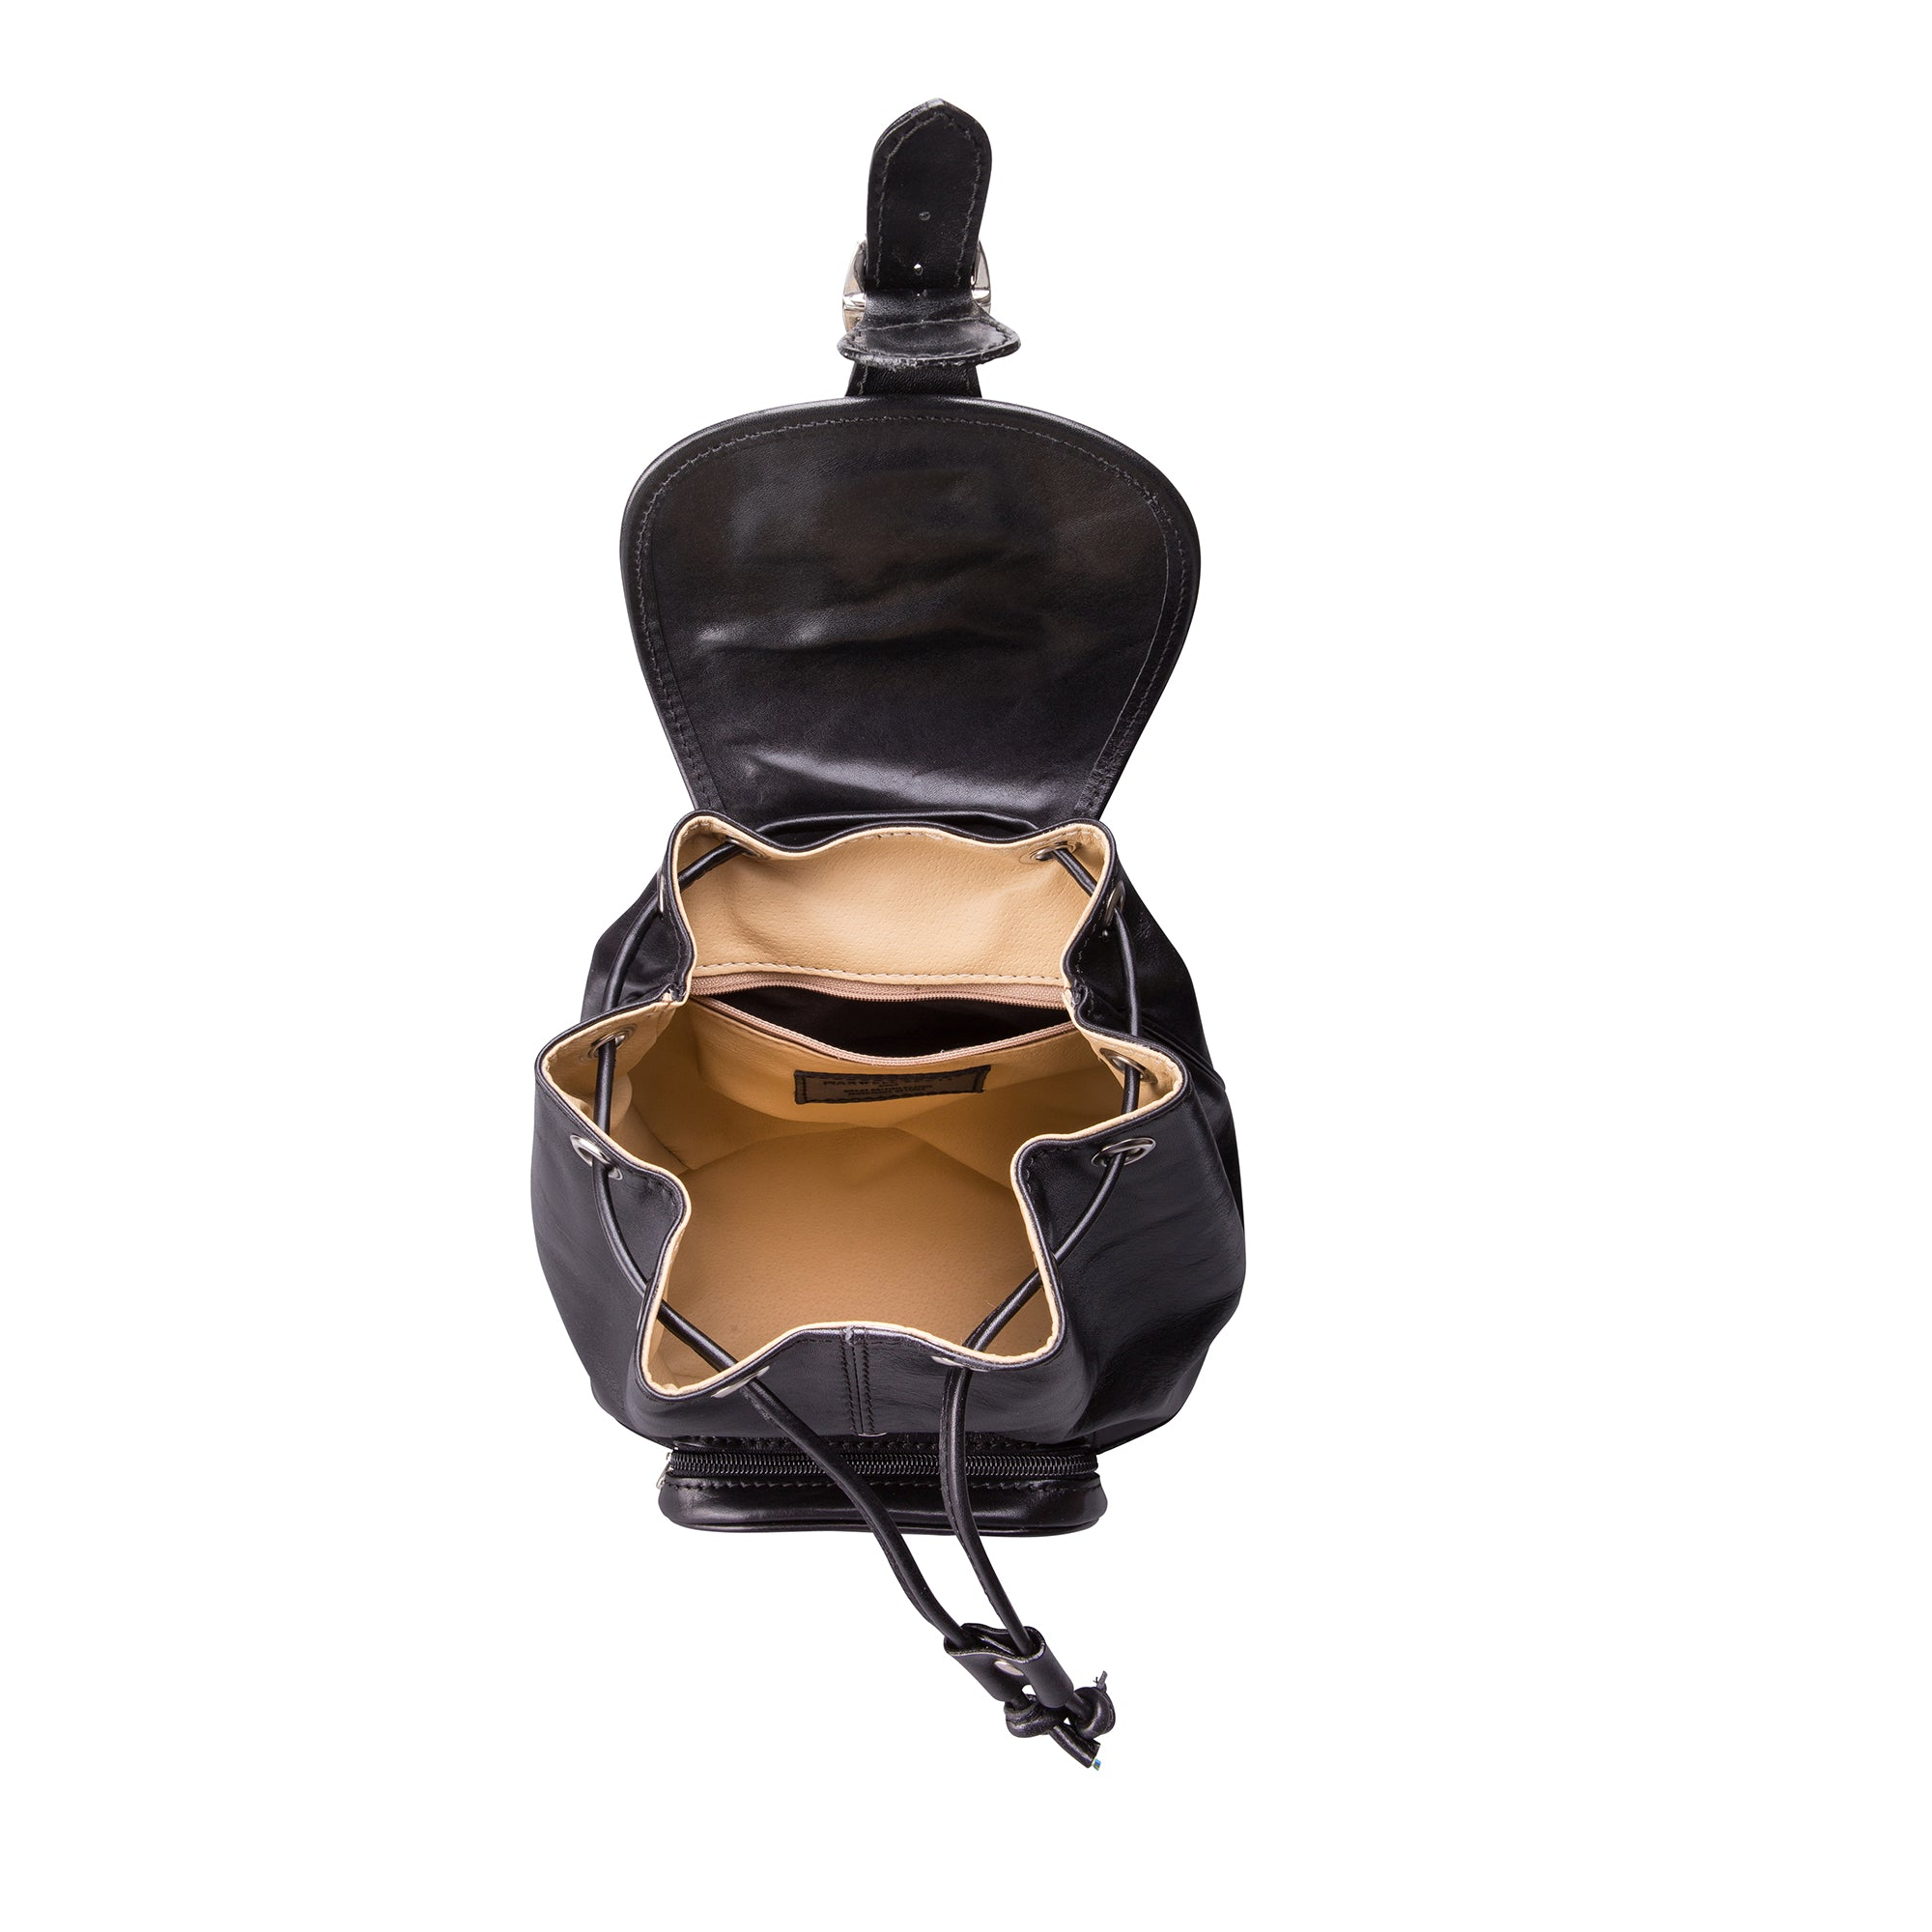 Image 5 of the 'Sparano' Black Veg-Tanned Leather Backpack